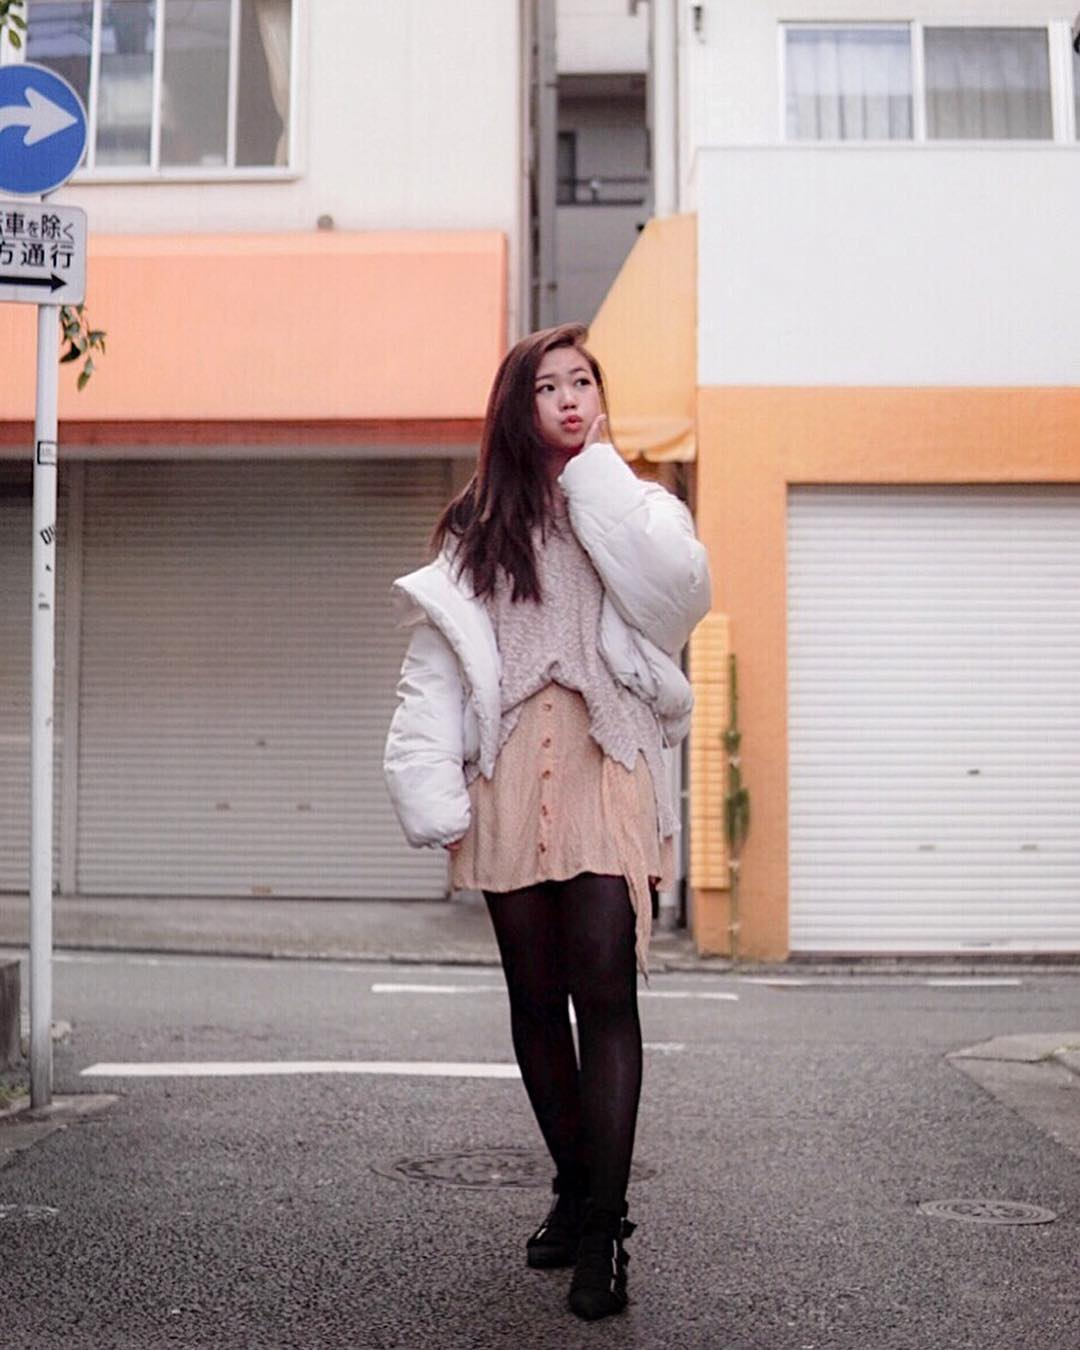 Layered hipster look for winter: puffer jacket, peasant dress and sweater 2021